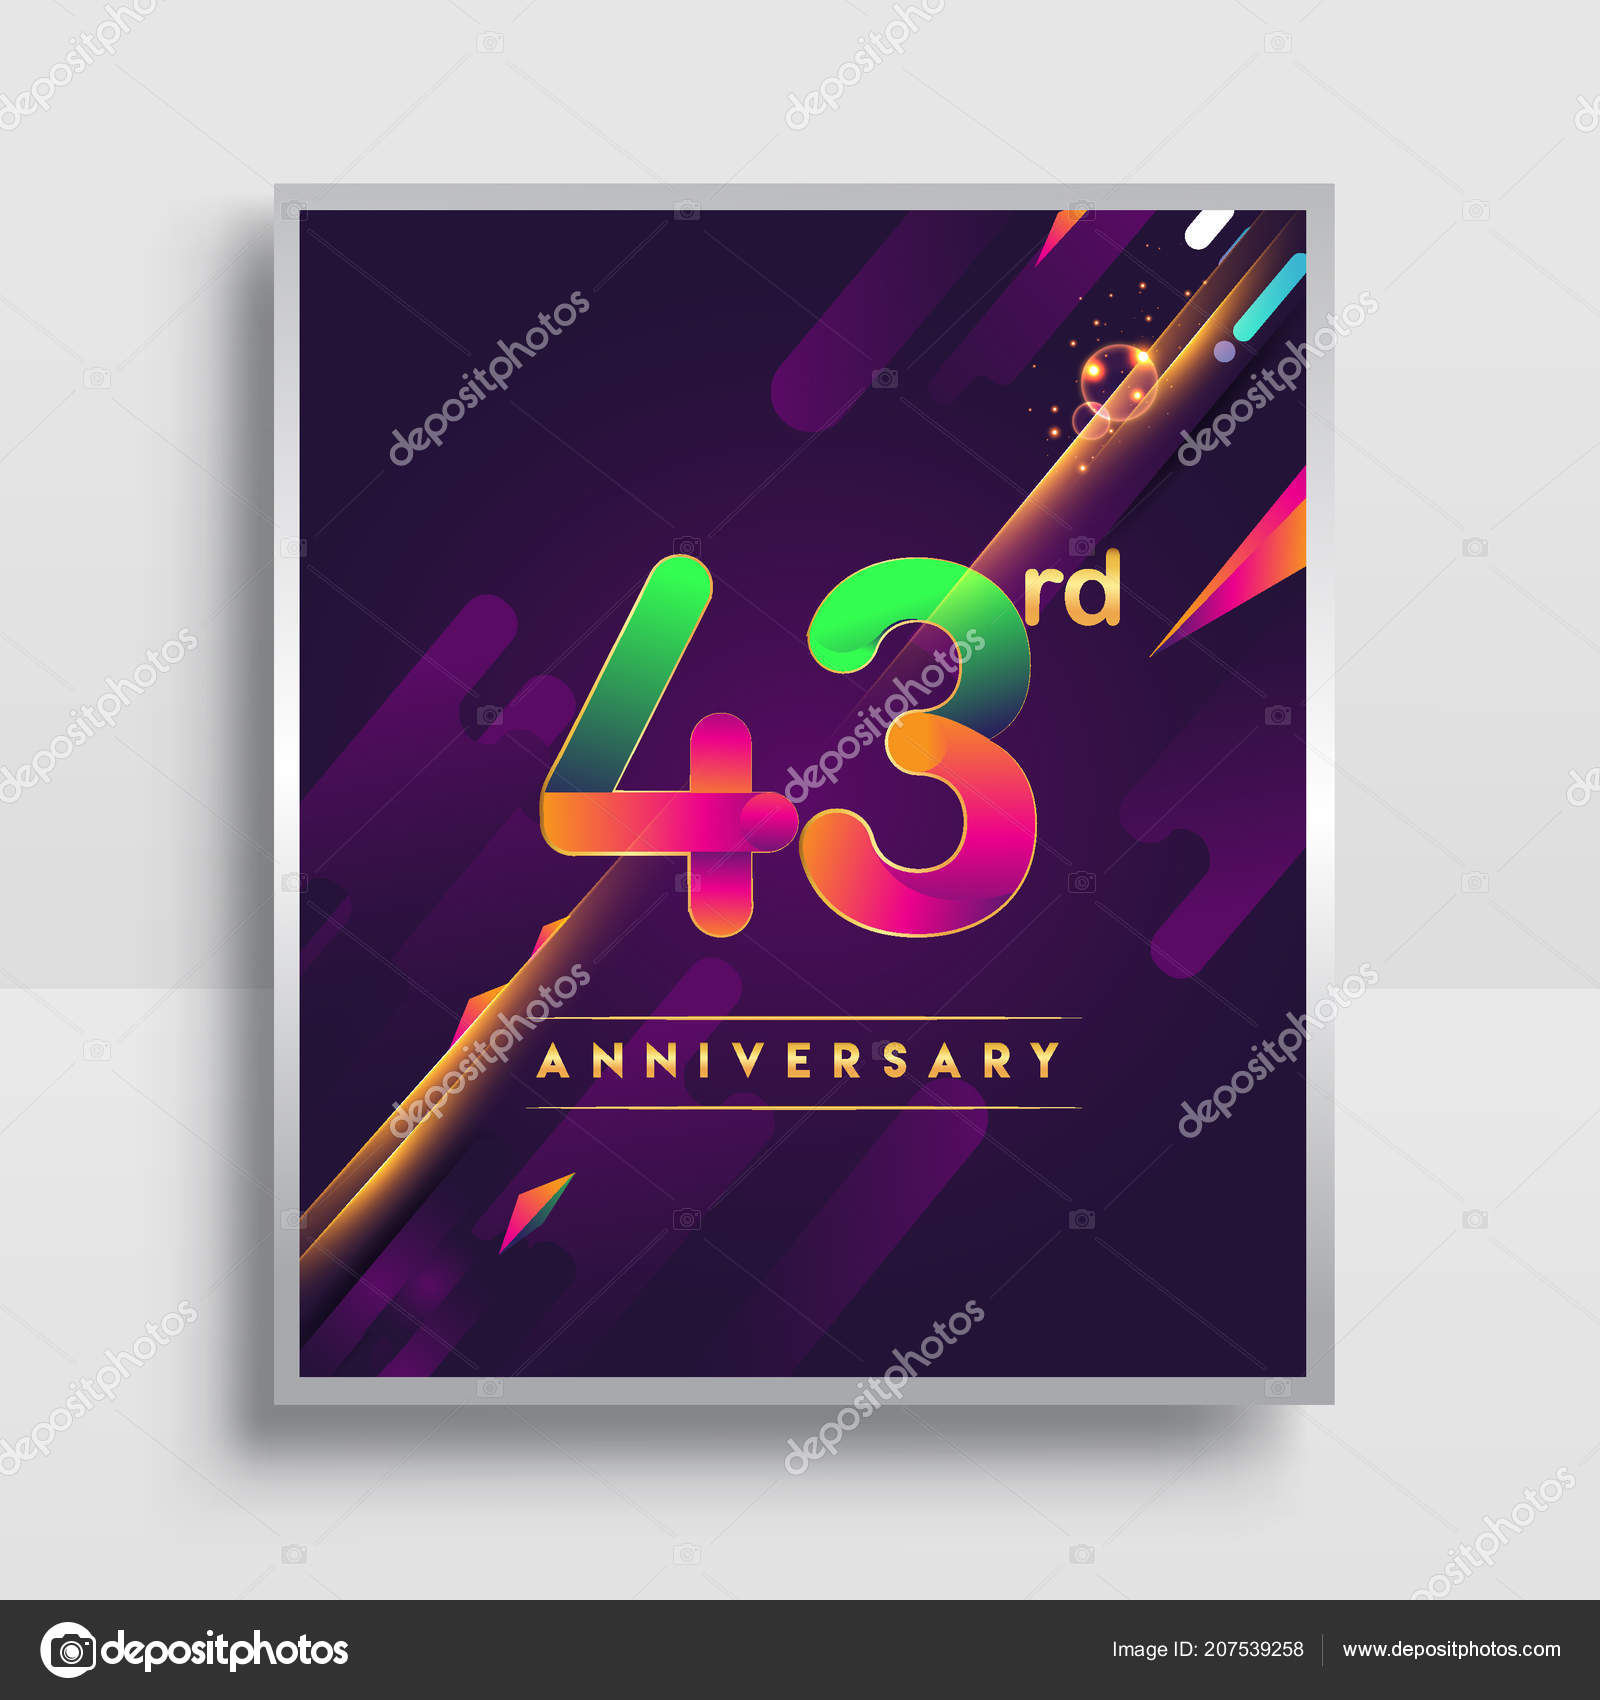 Years anniversary logo vector design invitation poster nineteen 43 years anniversary logo vector design for invitation and poster nineteen years birthday celebration with colorful abstract background isolated on white stopboris Image collections